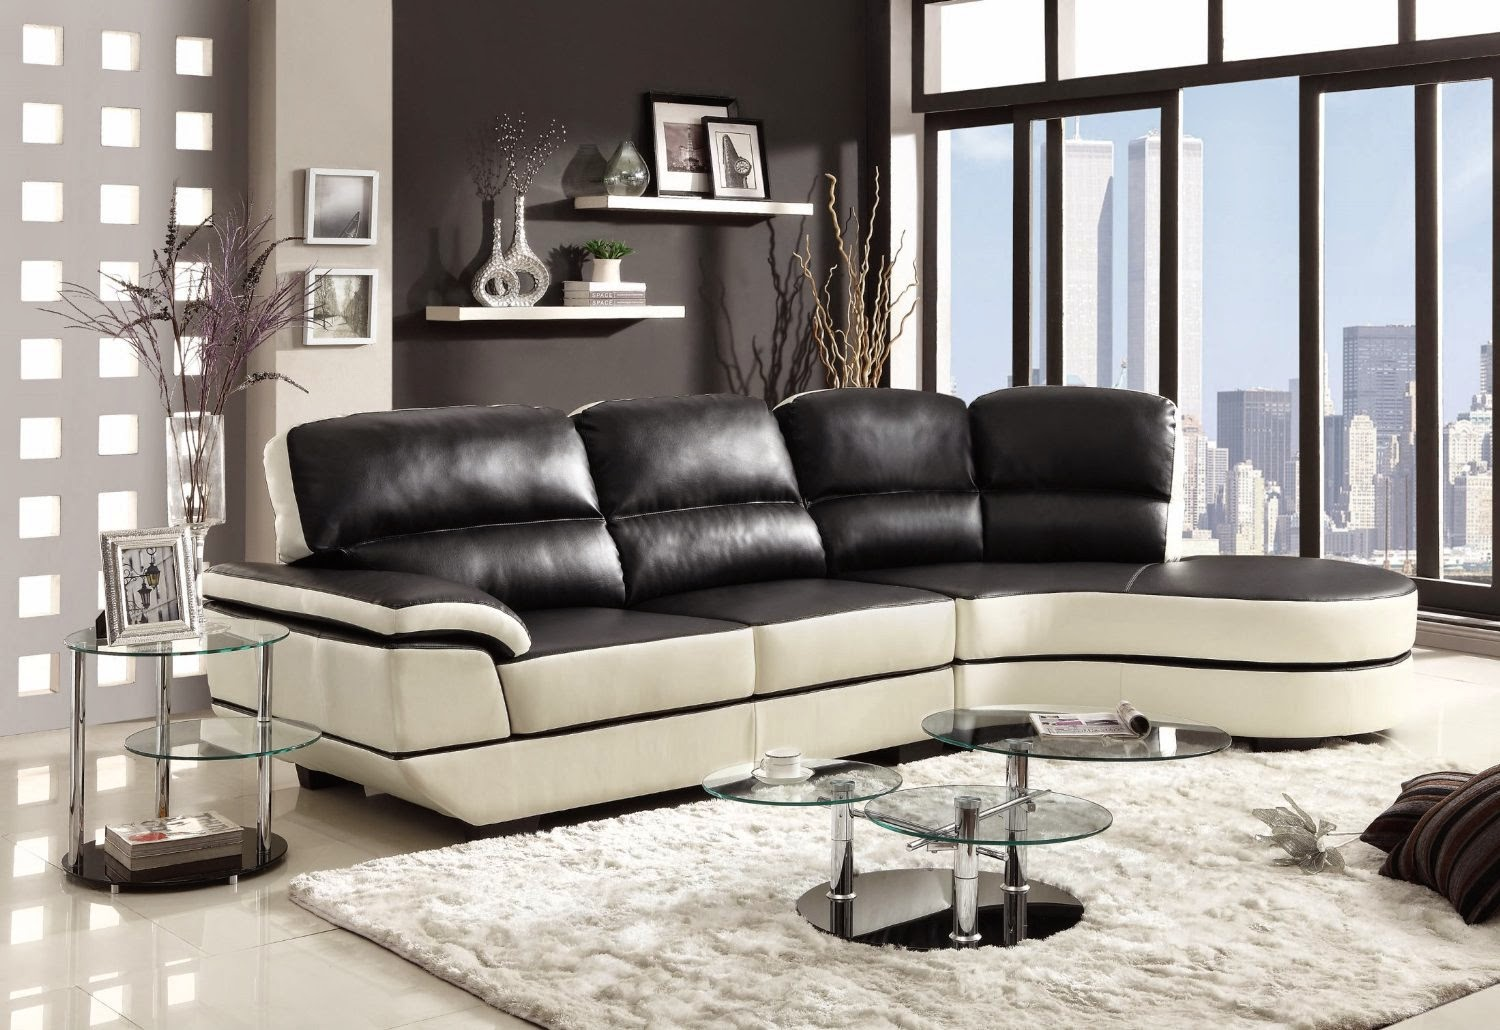 curved sofa website reviews curved sectional sofa with chaise. Black Bedroom Furniture Sets. Home Design Ideas